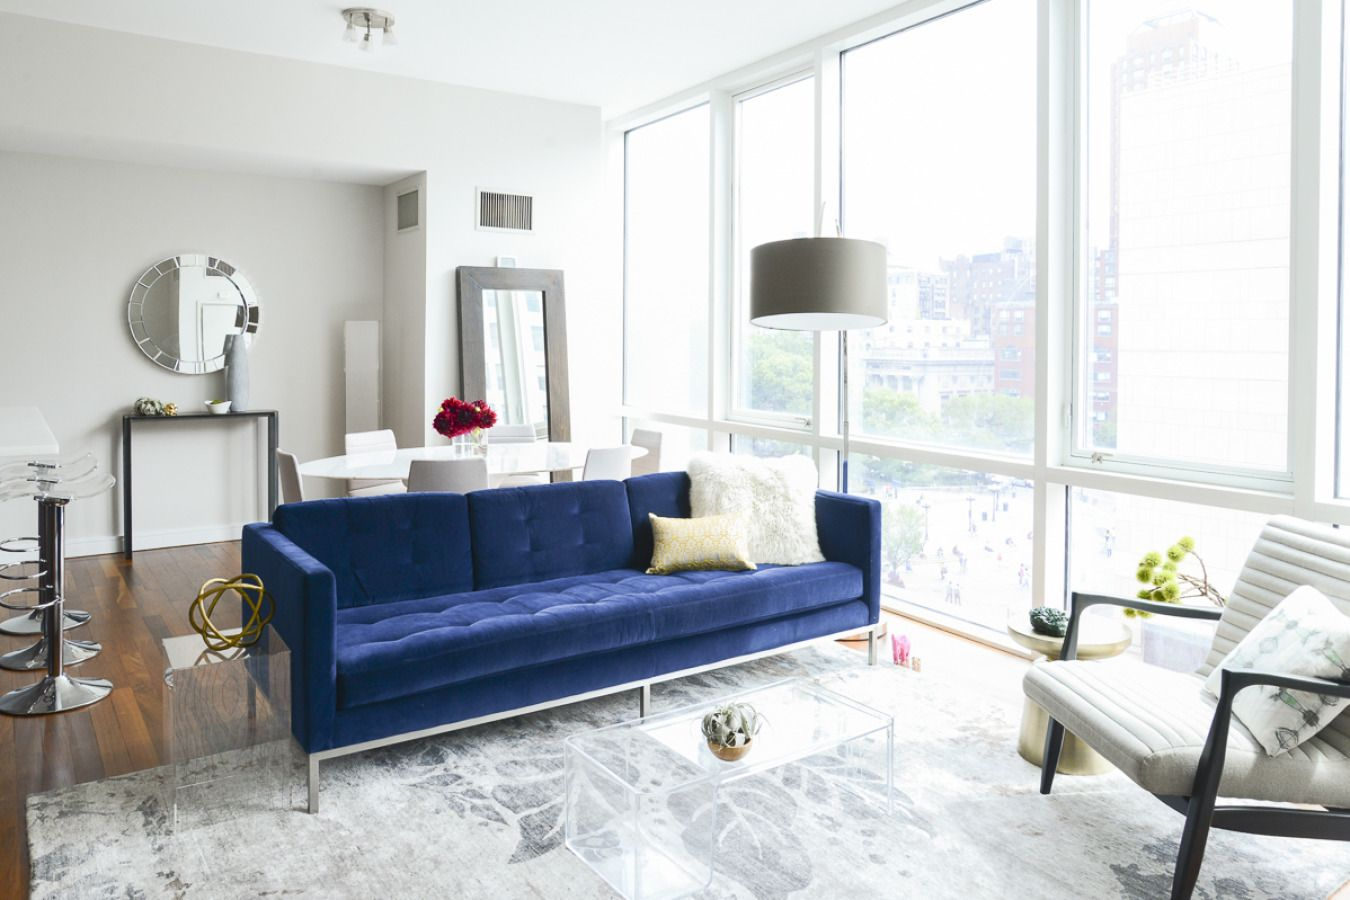 Big City Living in Union Square | Warm colors, Union square and Room